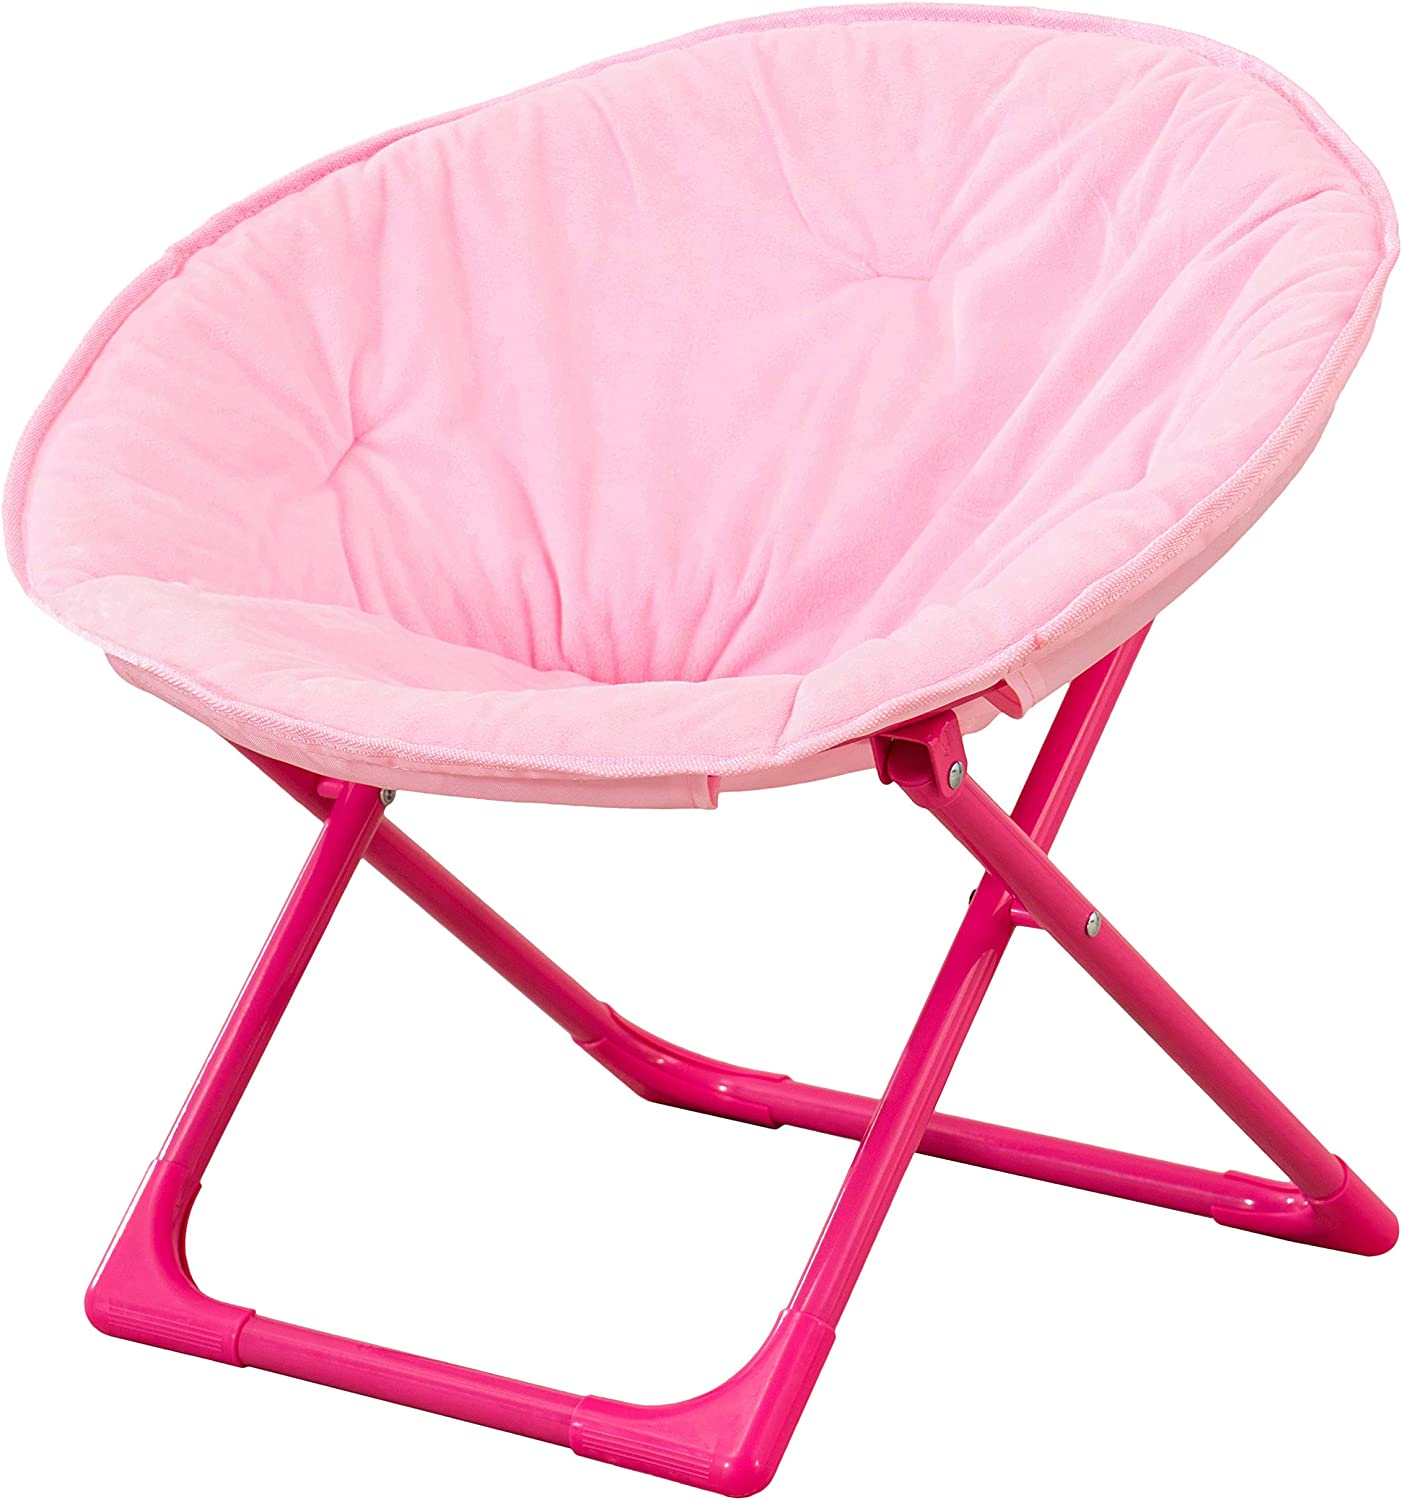 AmazonBasics Kids Folding Moon Indoor Papasan Chair for Children - Solid Pink